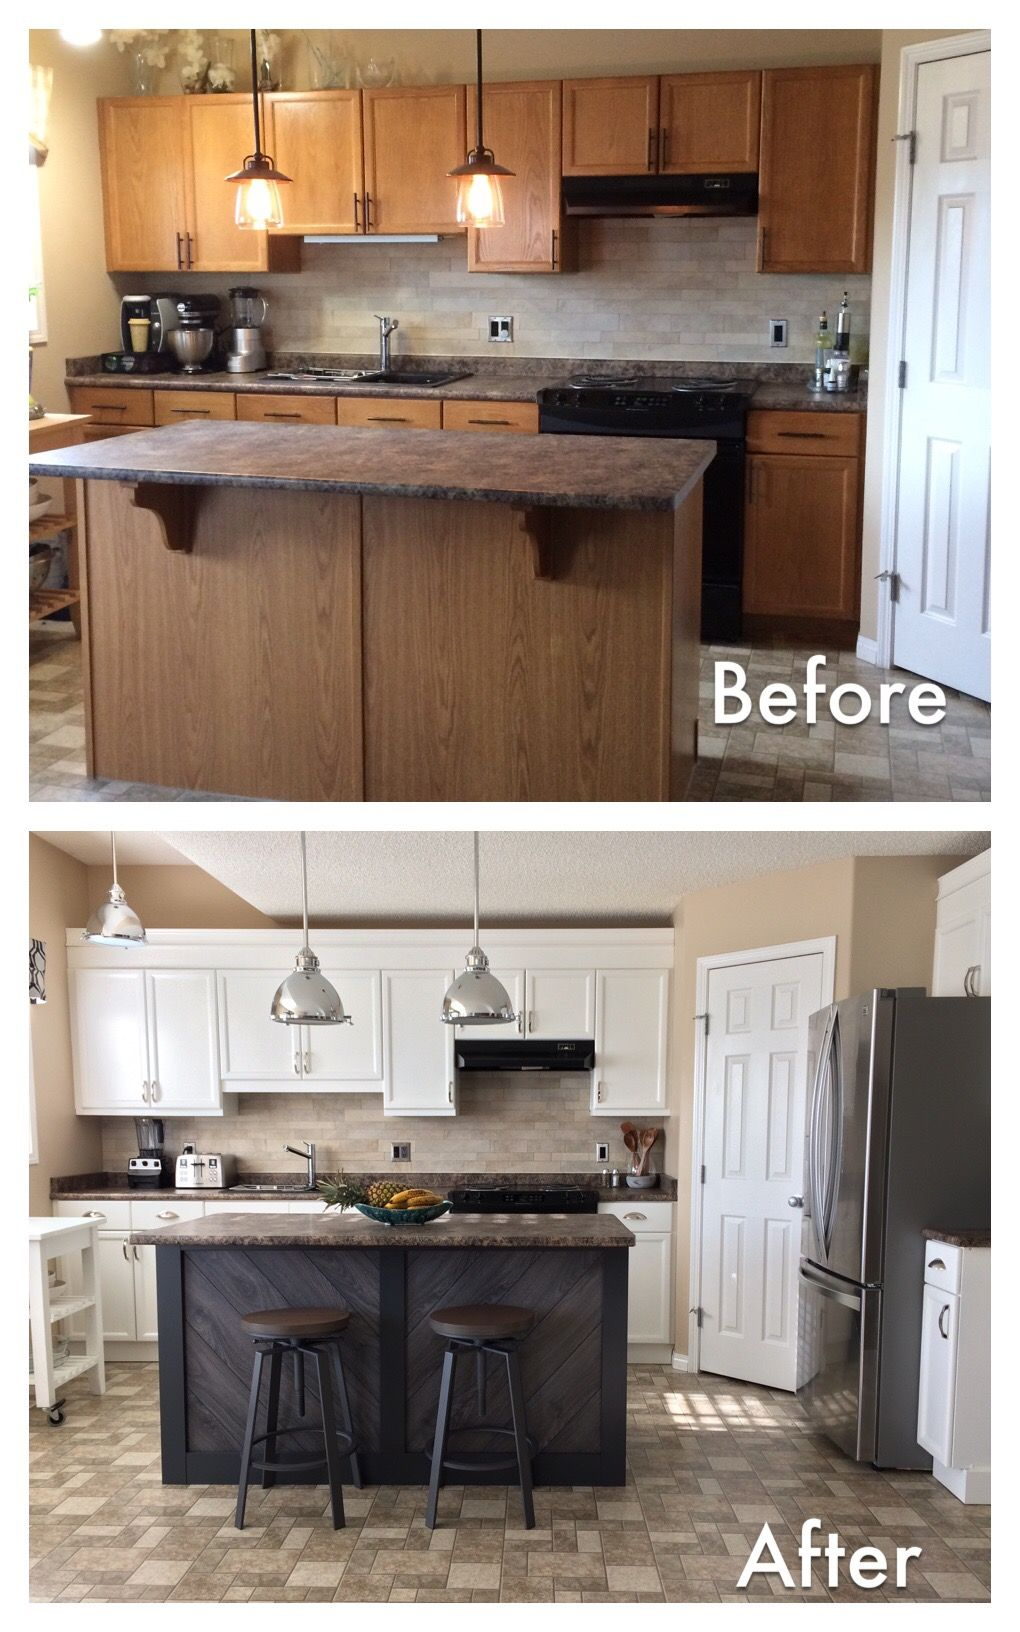 This Is An Updated Kitchen On A Budget Paint Used Benjamin Moore Simply White And Wroug Laminate Kitchen Cabinets Kitchen Cabinet Interior Ikea Kitchen Design